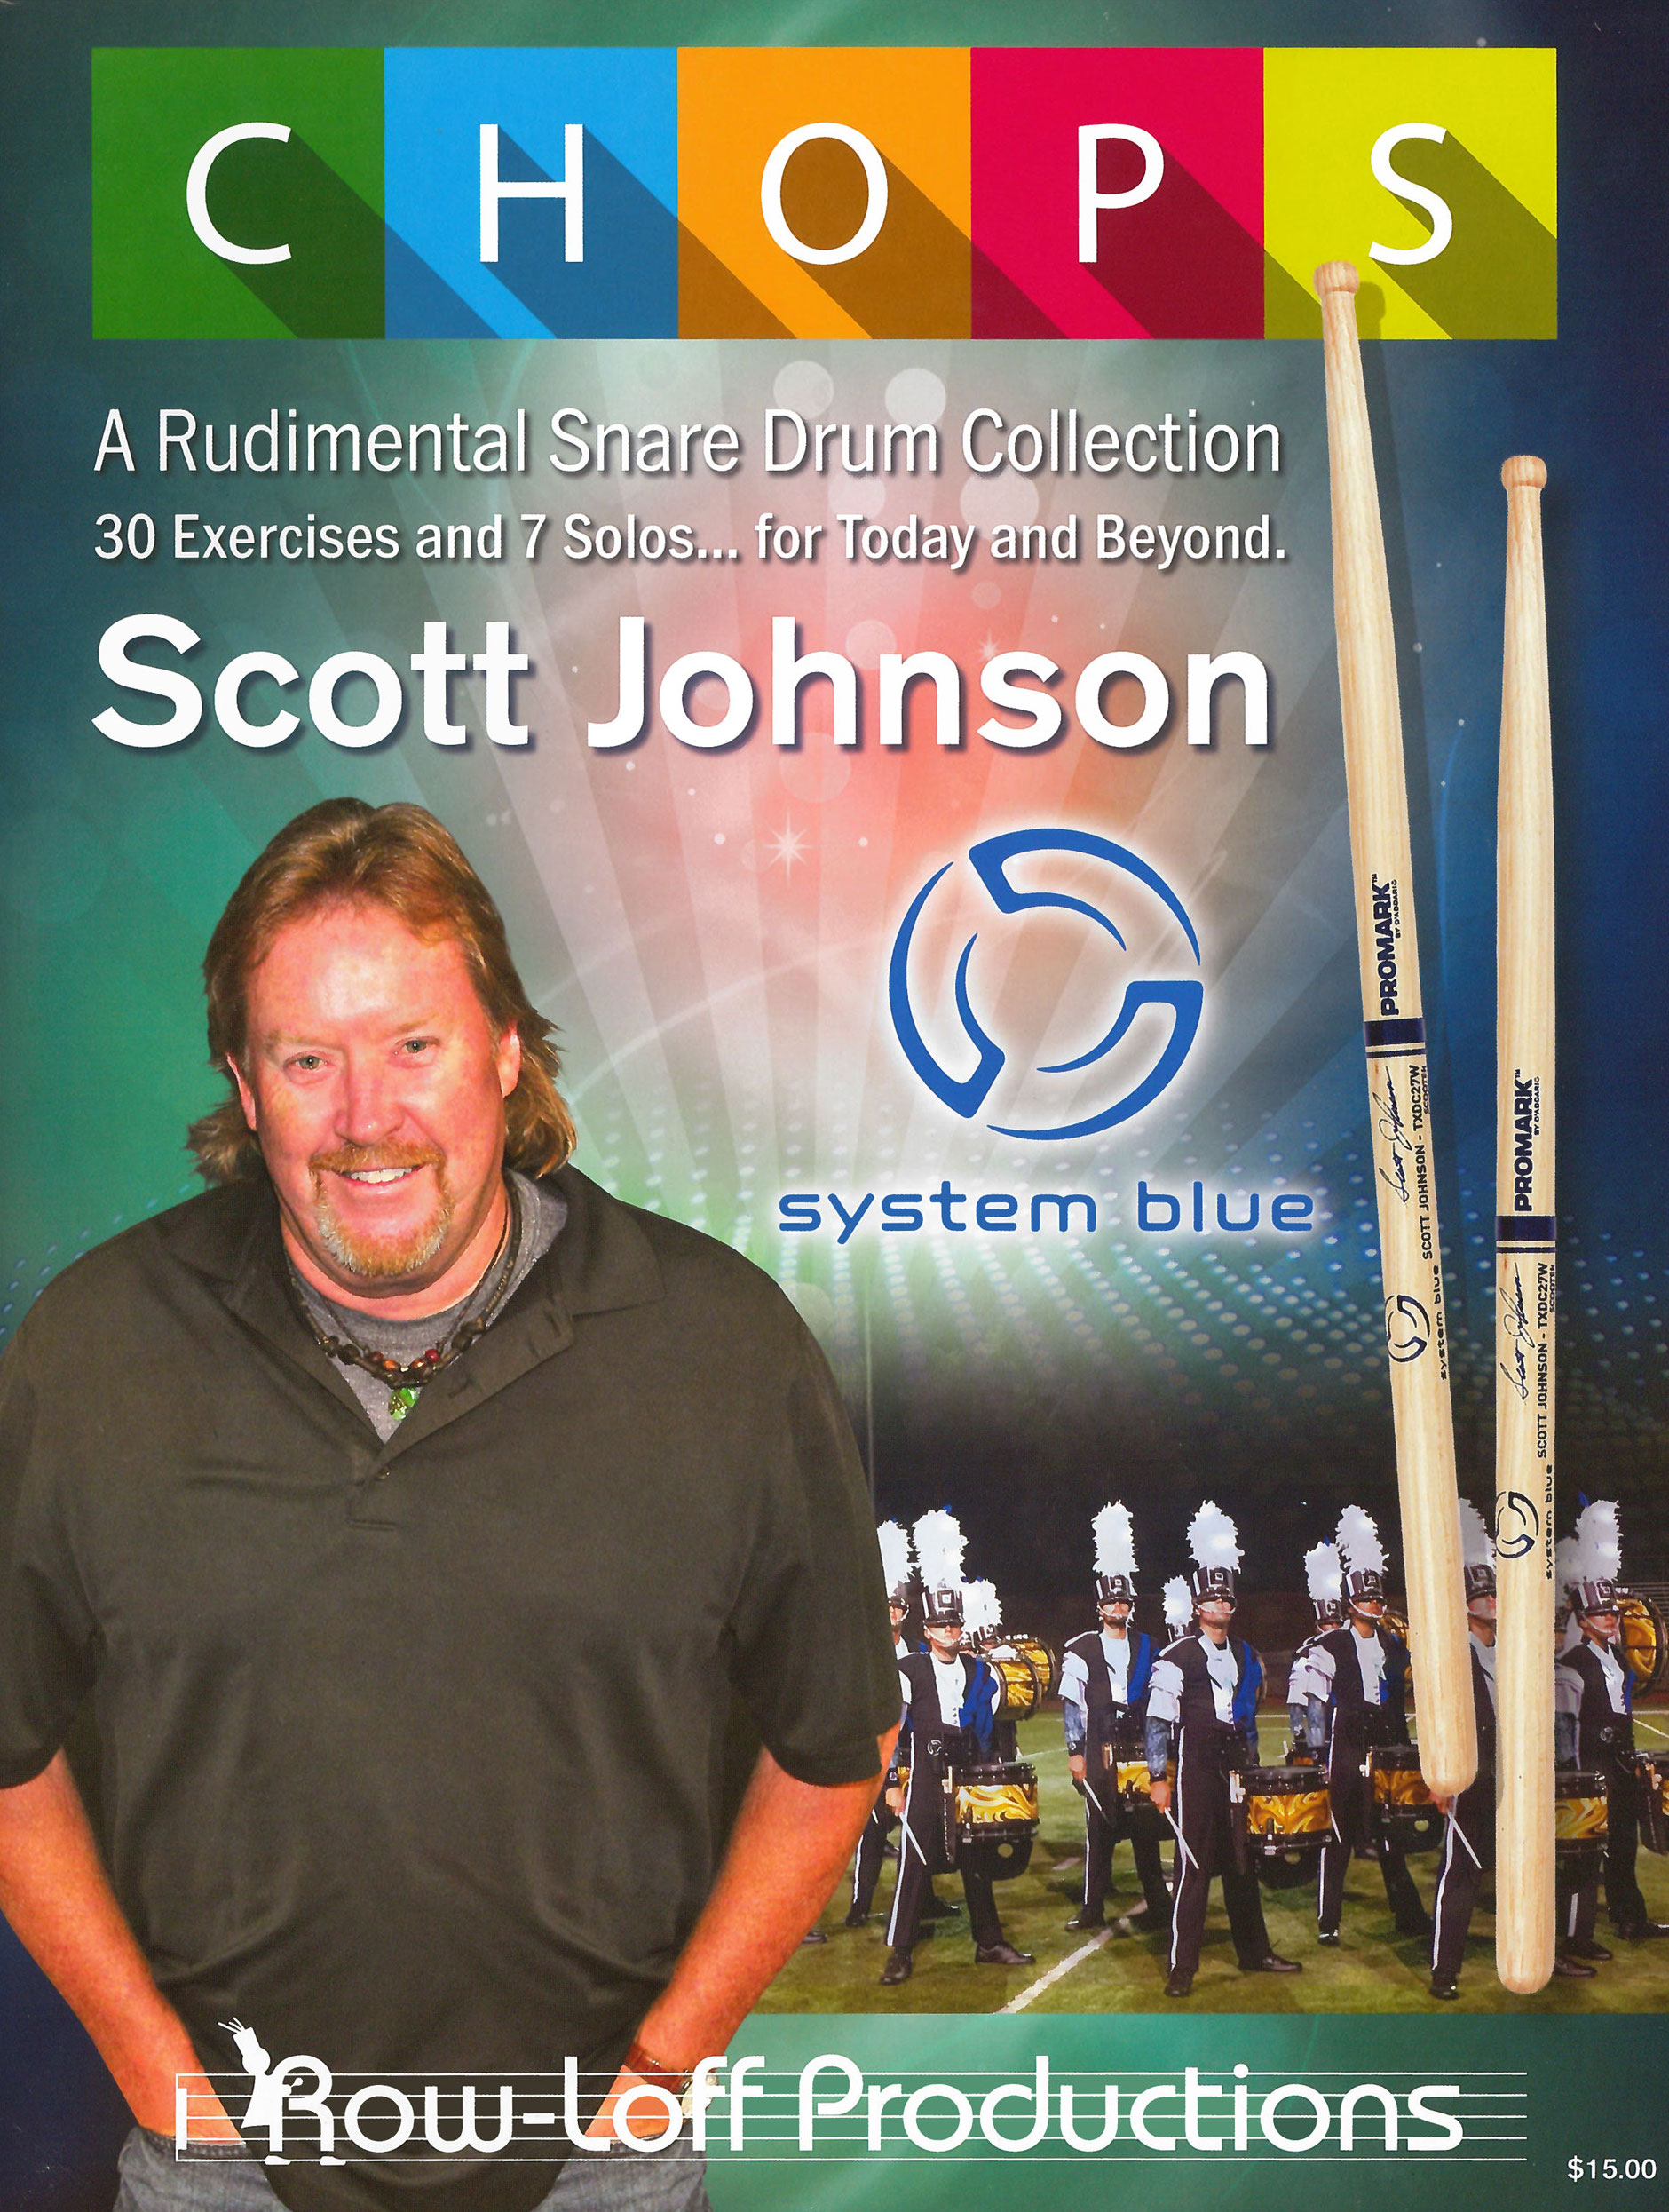 Scott Johnson- Chops, by Rowloff